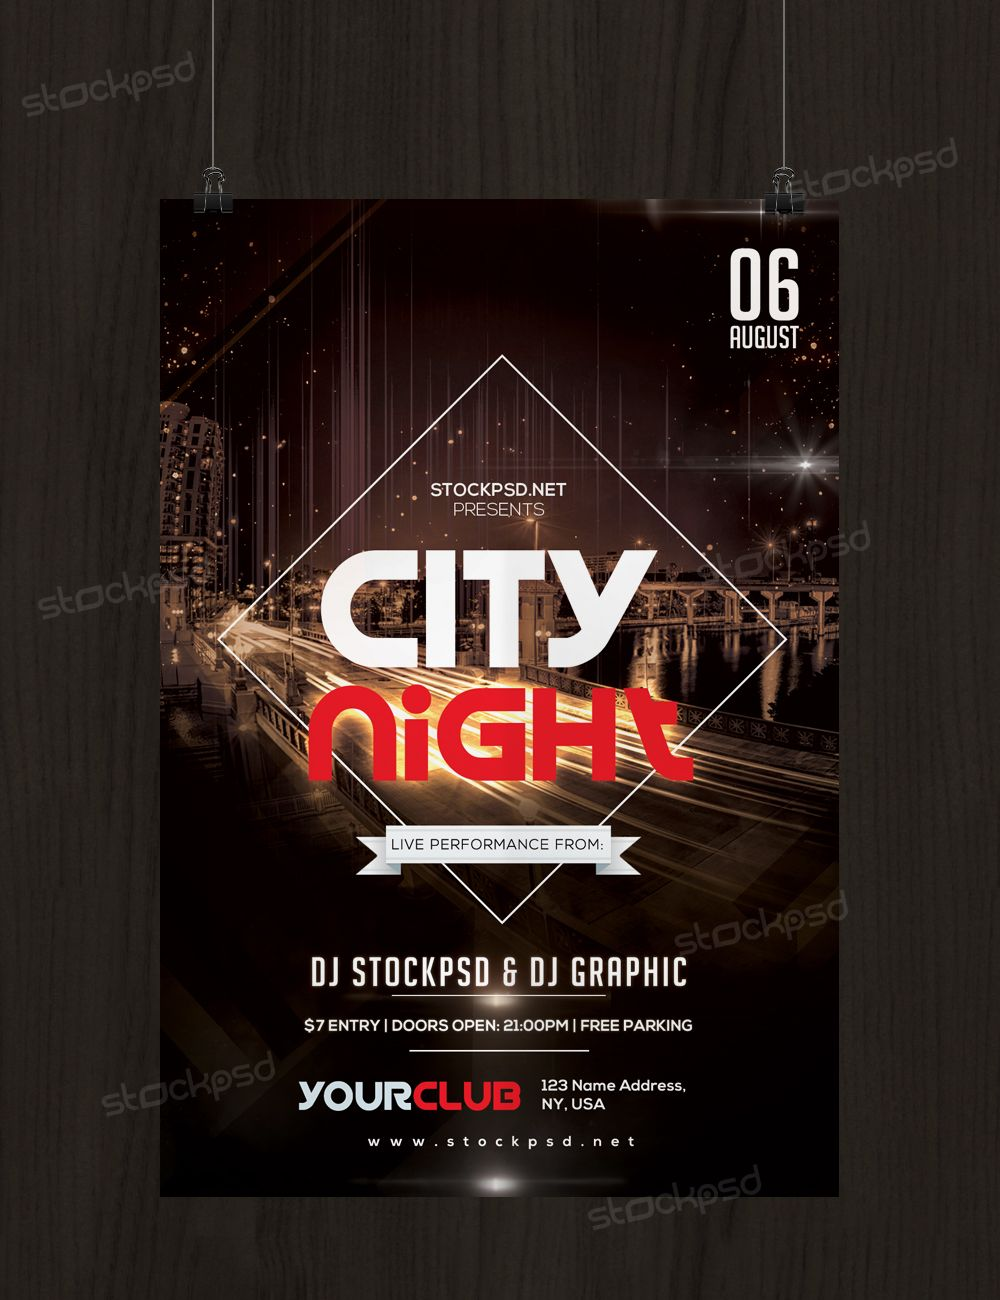 City Night Flyer Is A Free Psd Flyer Template To Download Psd File Is Fully Editable And Very Easy Free Psd Flyer Templates Psd Flyer Templates Free Psd Flyer Flyer template psd free download